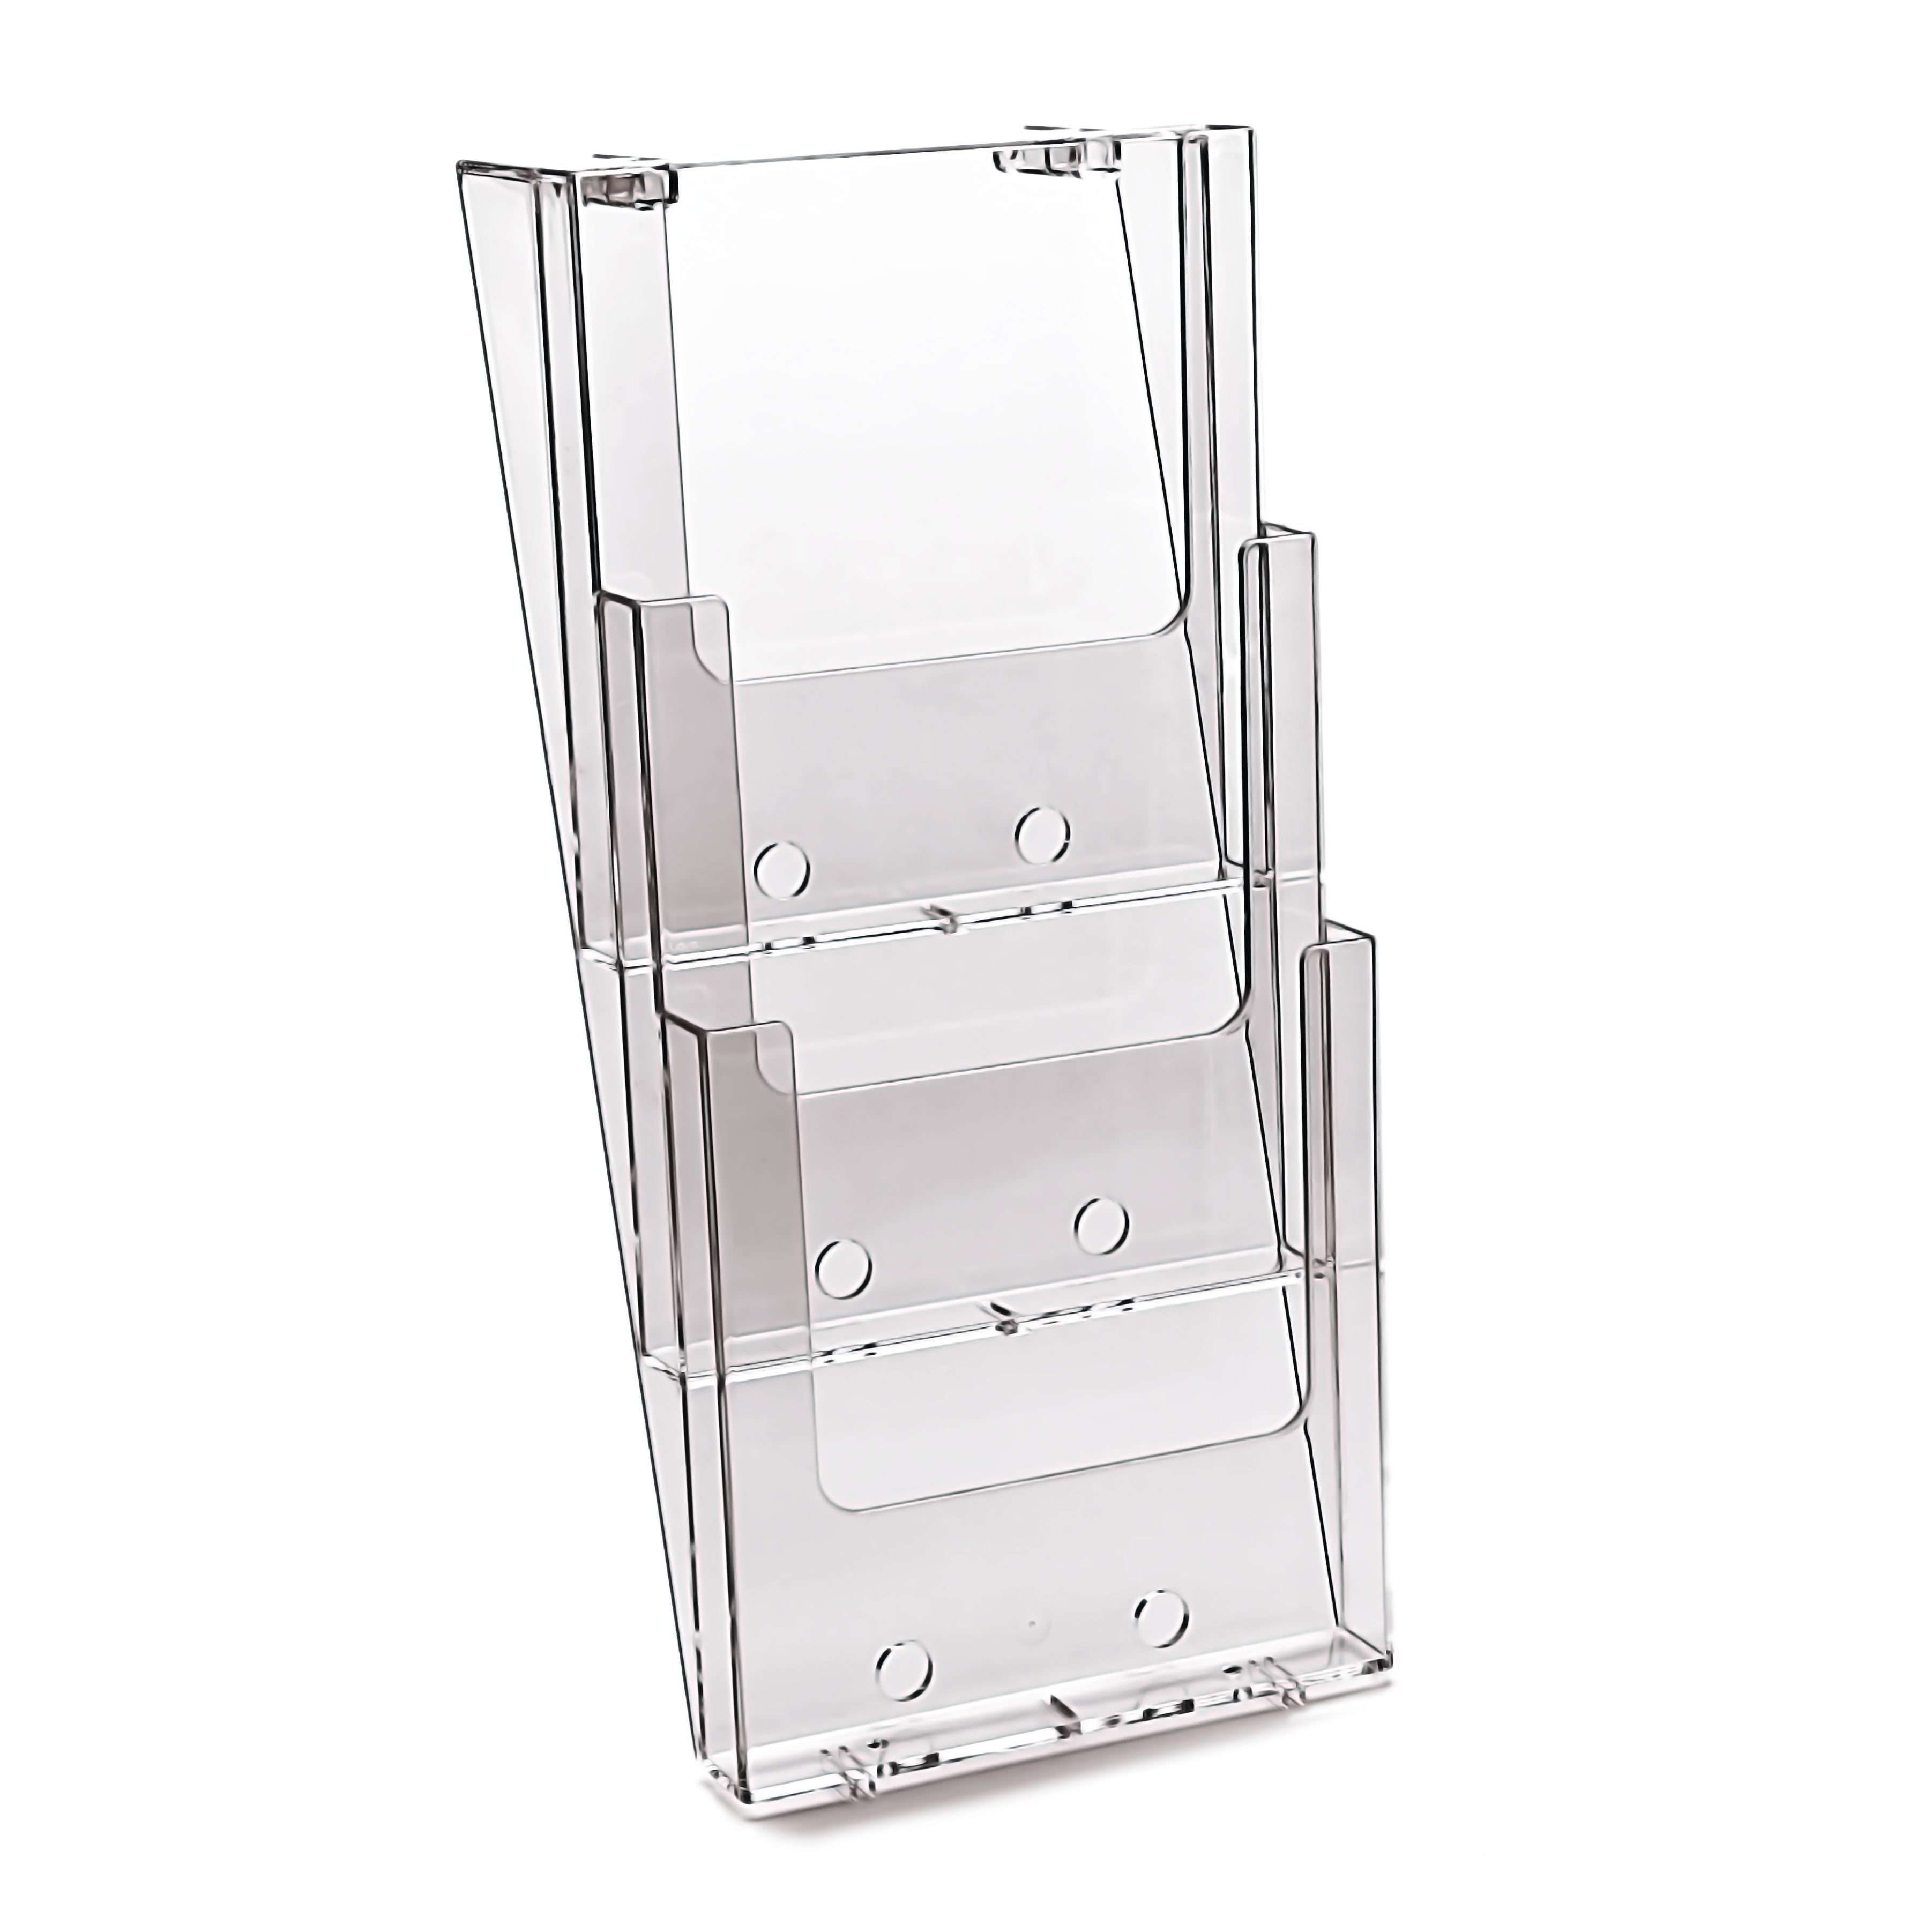 table mount awesome beautiful plastic wall ideas top mounted racks brochure holder of rack